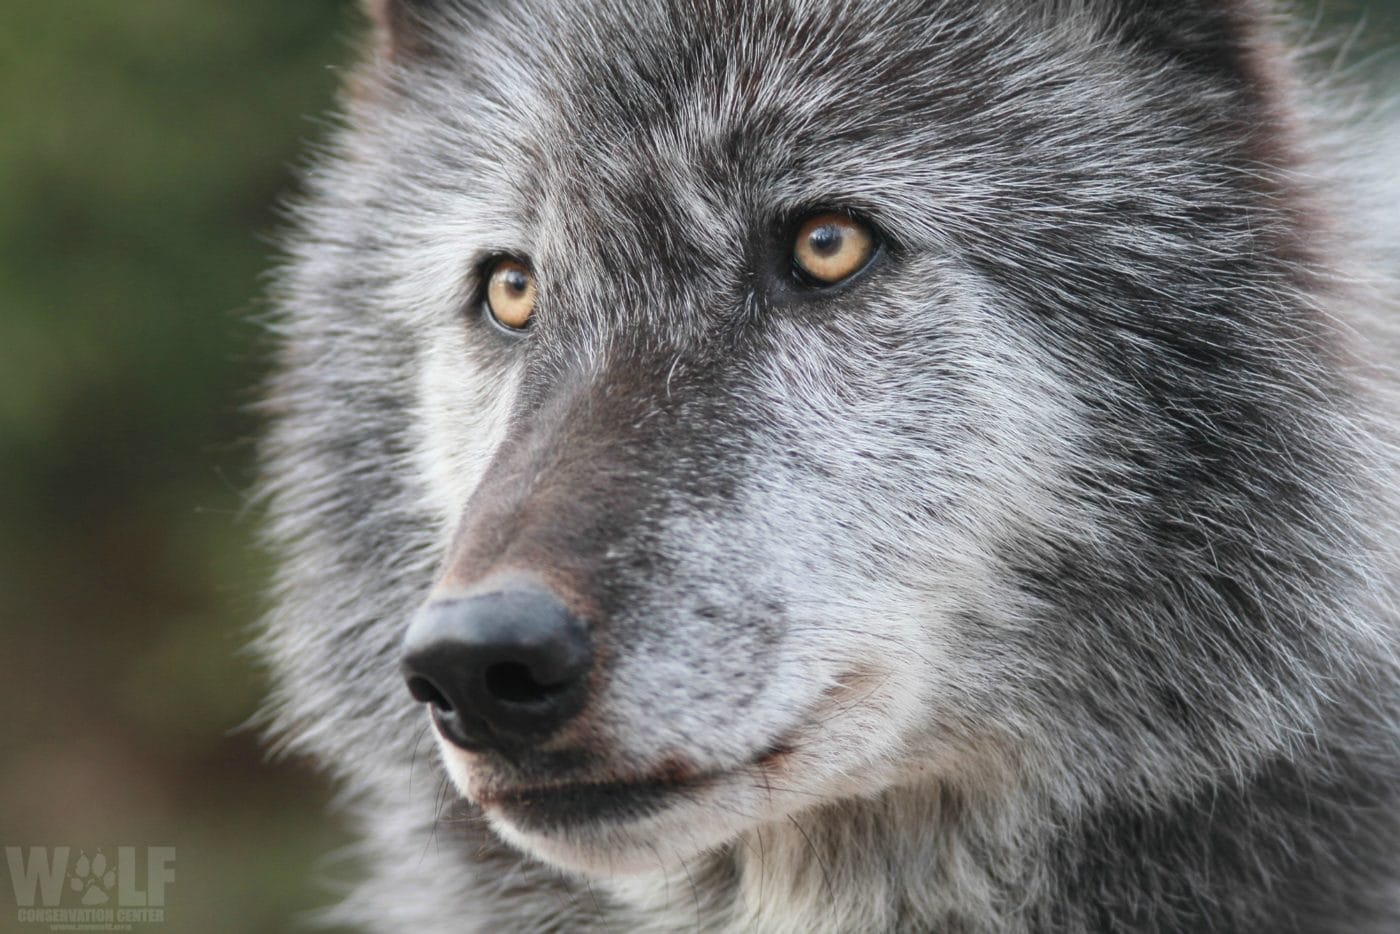 One Month Left to Oppose Gray Wolf Delisting Plan